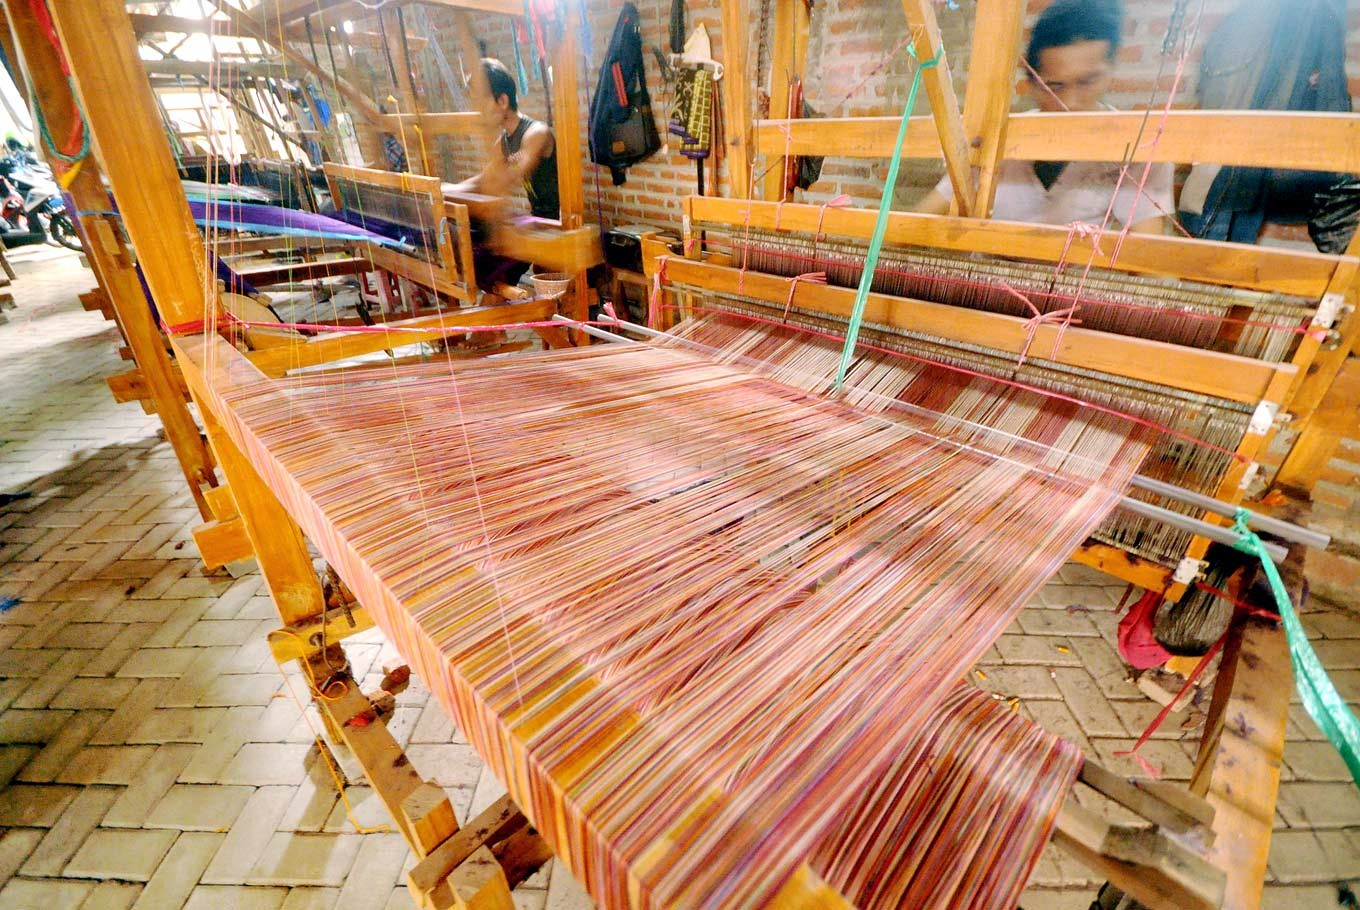 Industry Ministry sets up woven fabric SMEs center in West Sumatra